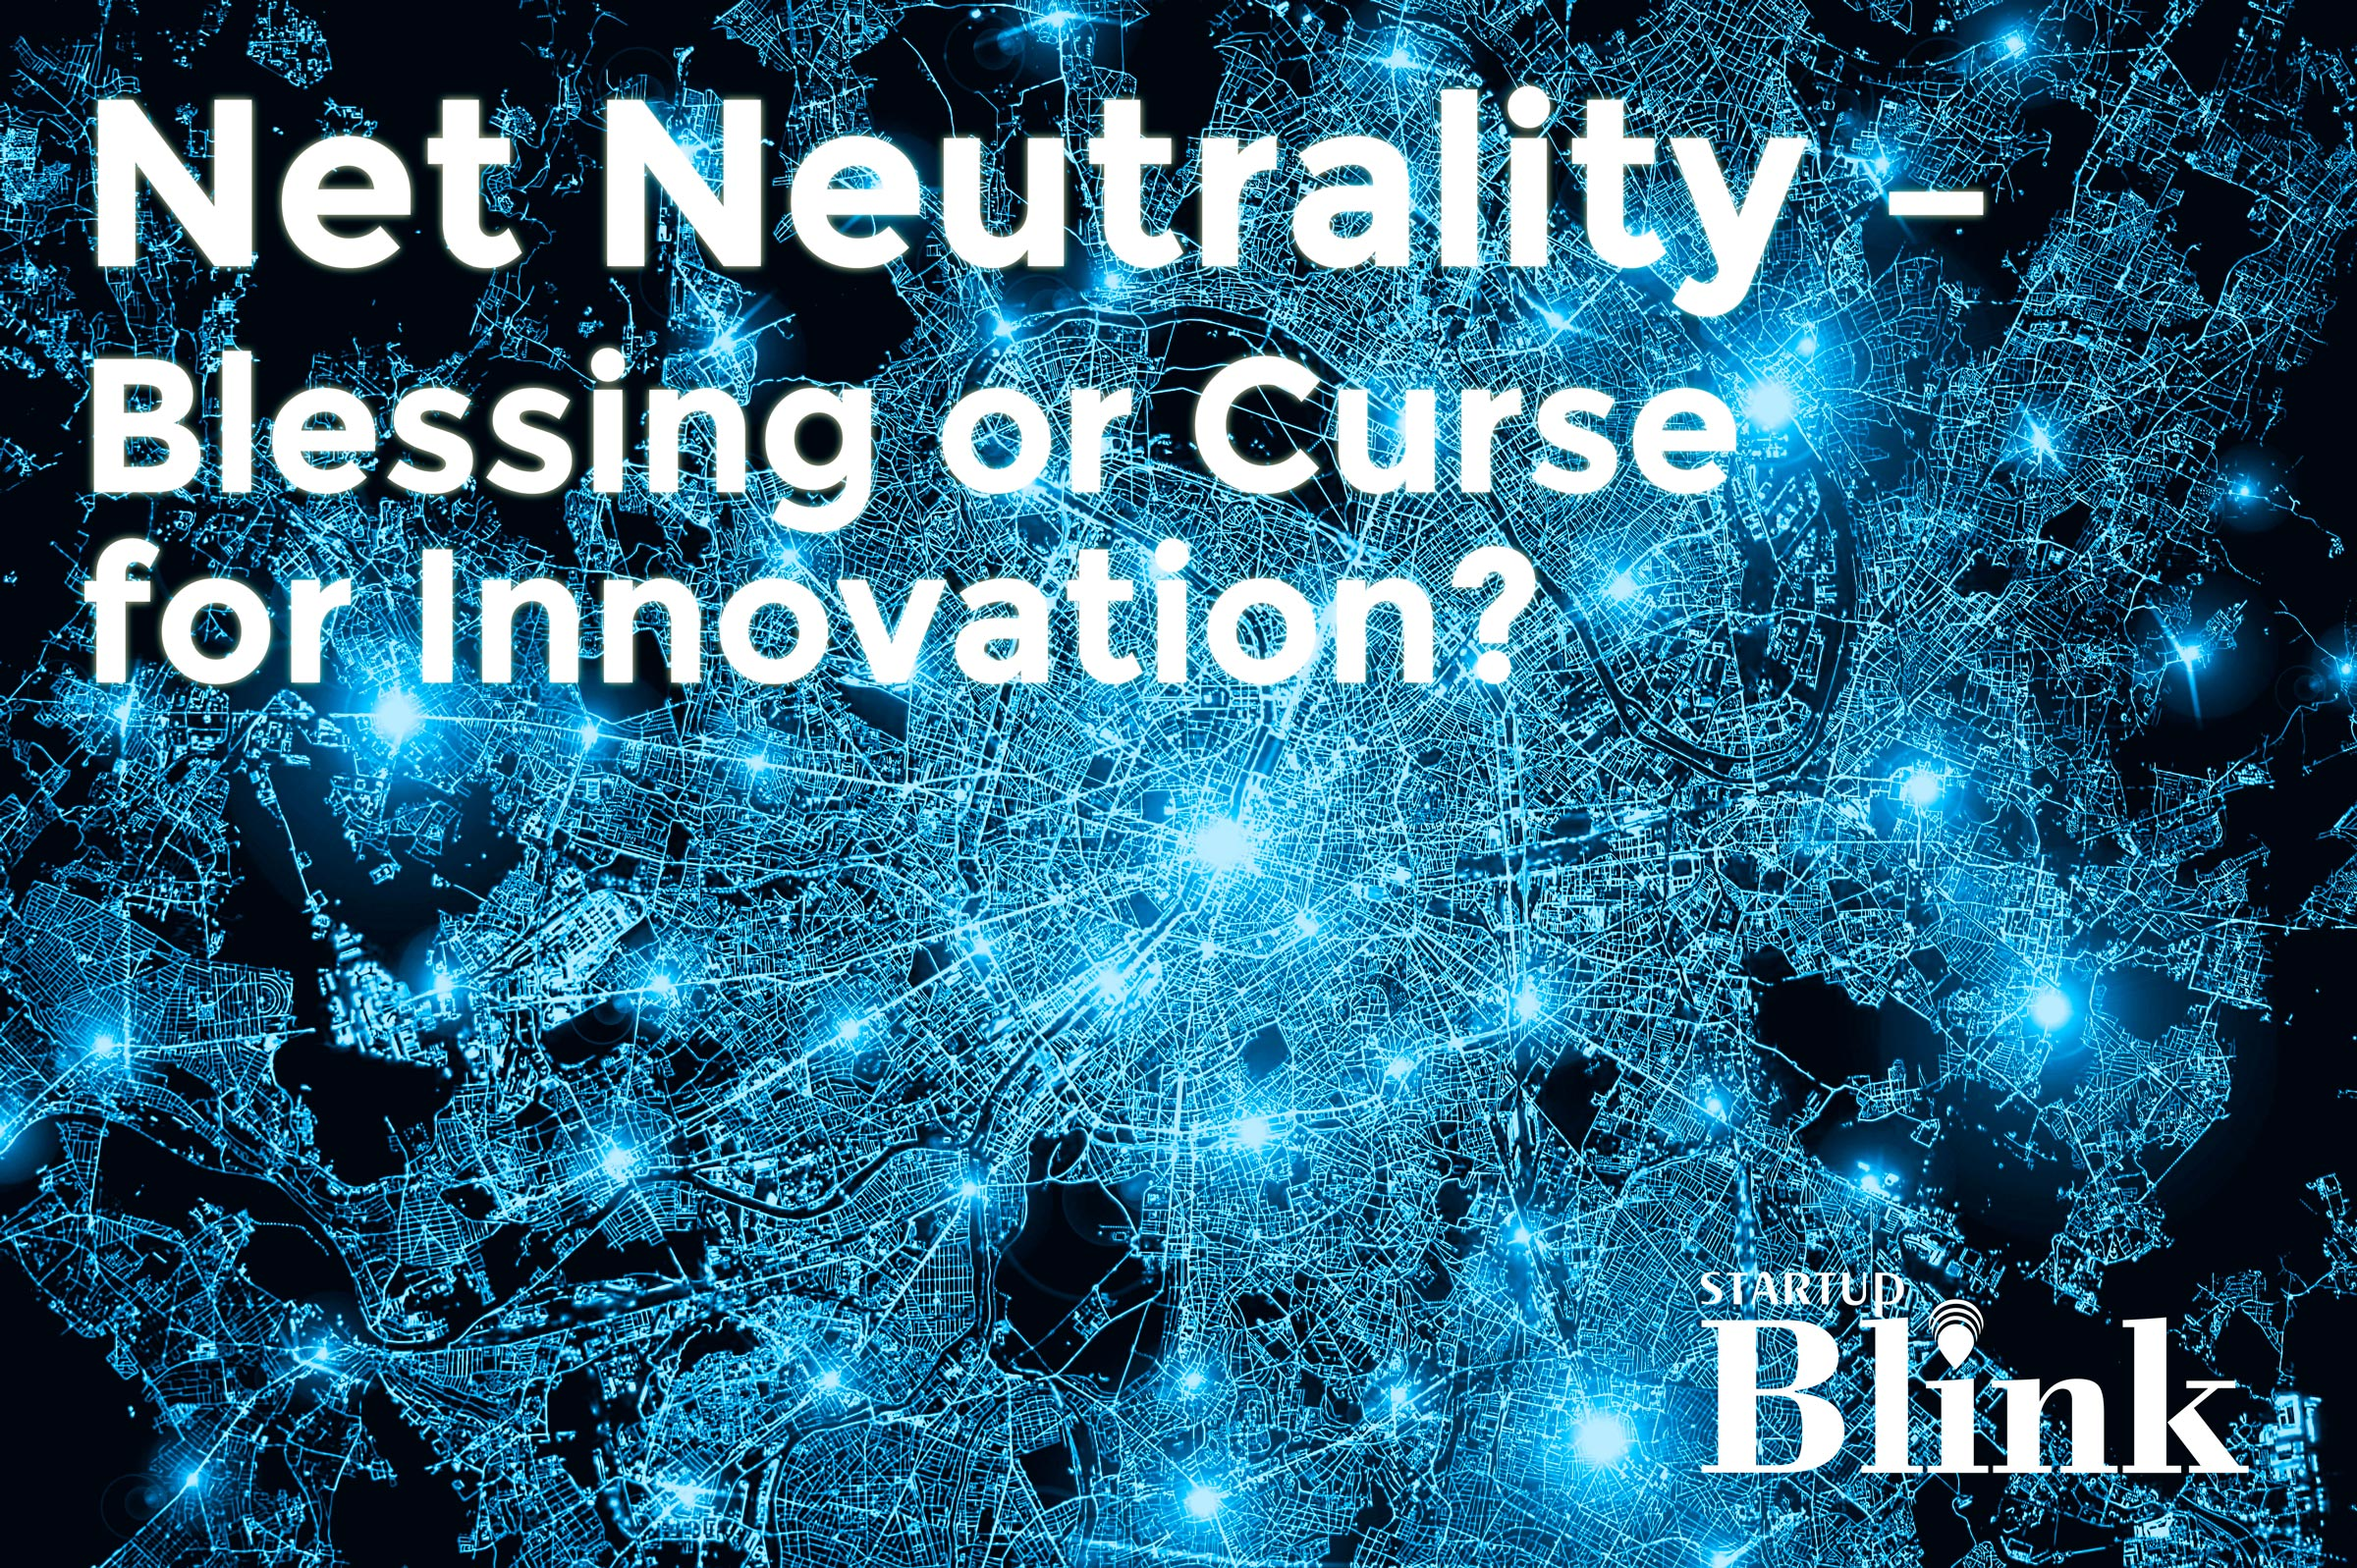 Net Neutrality - Blessing or Curse for Innovation? StartupBlink Zurich Networking Event